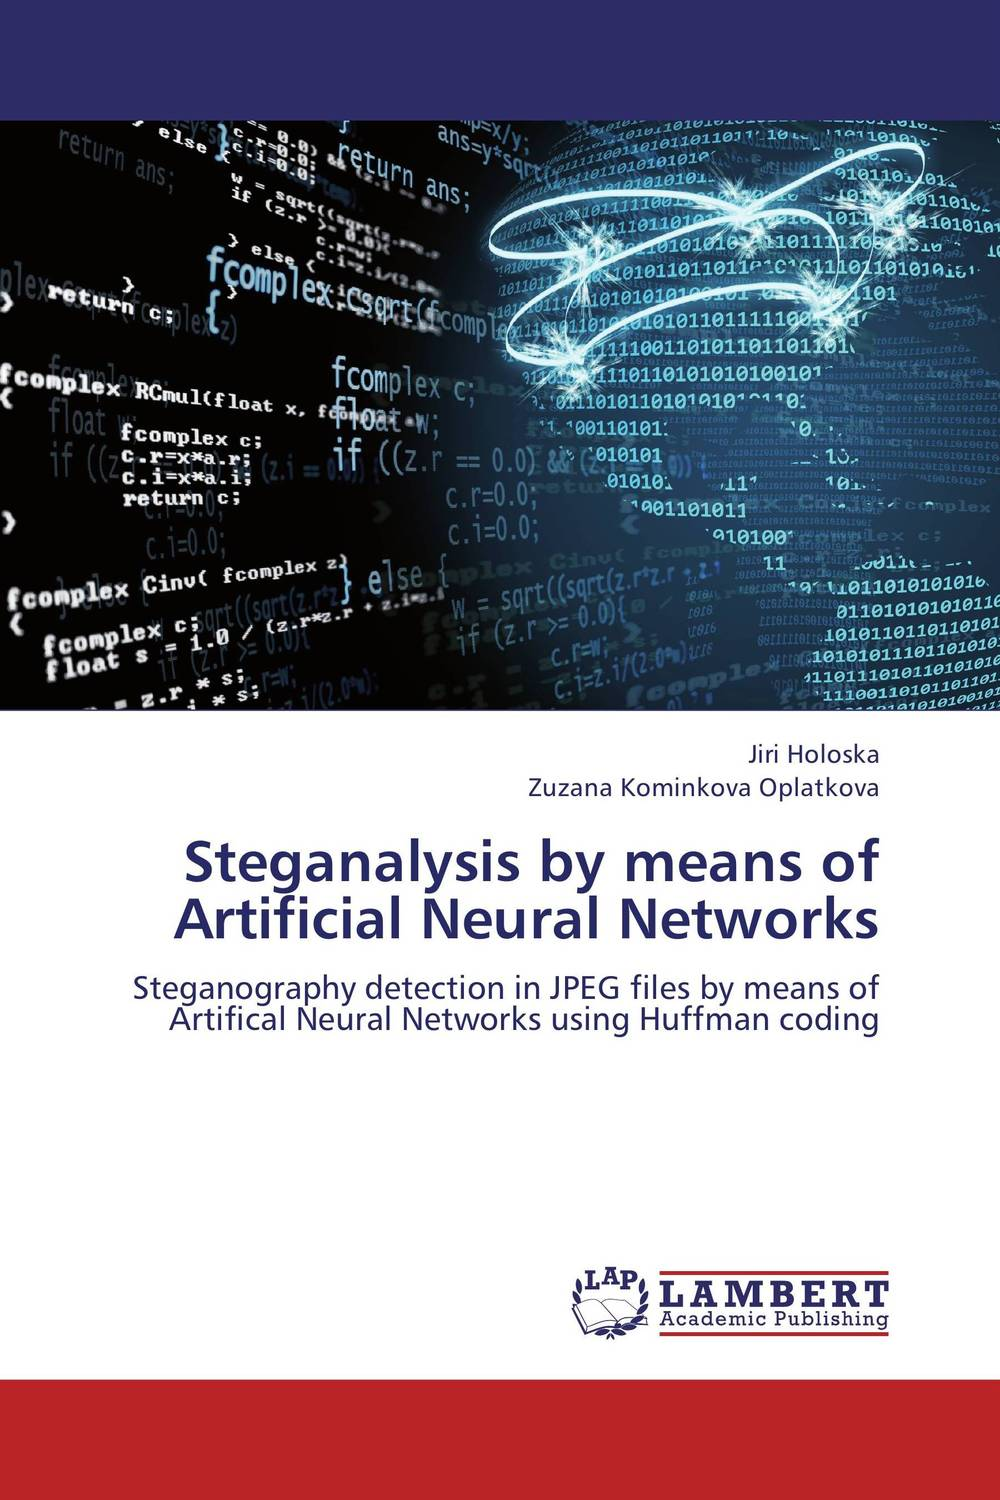 Steganalysis by means of Artificial Neural Networks software effort estimation using artificial neural networks